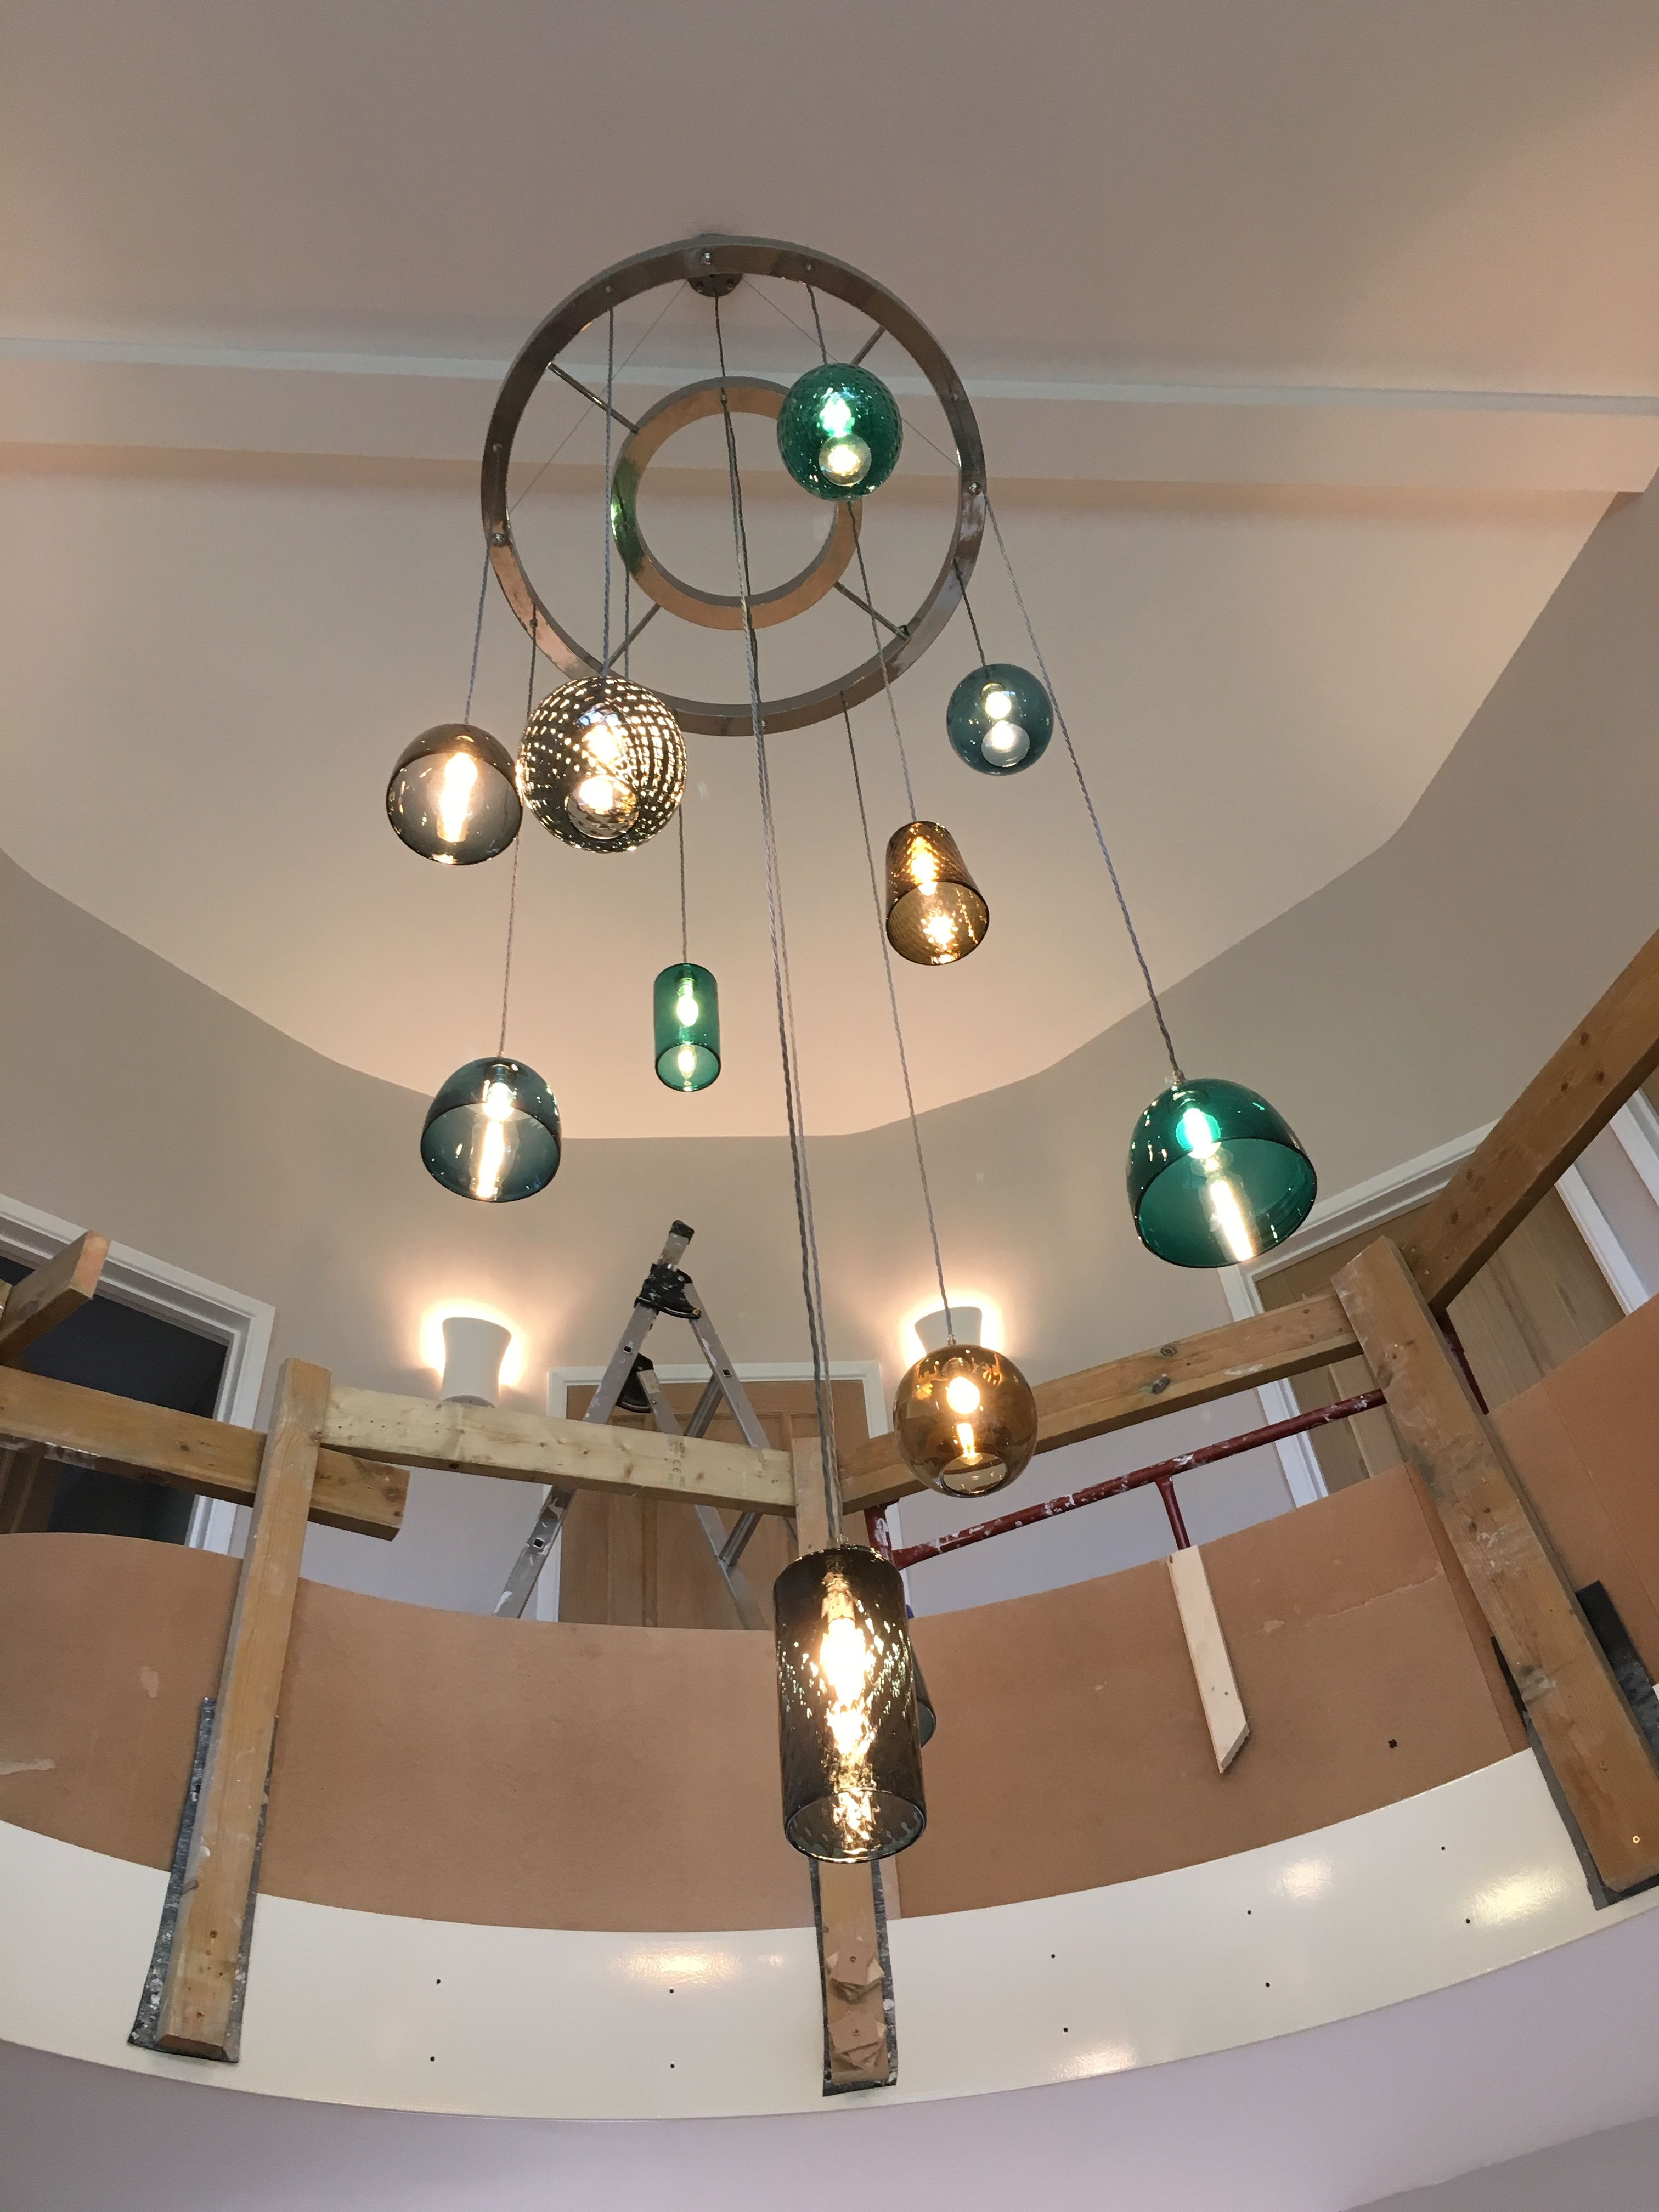 multiple pendant lighting fixtures. Installing Large Ceiling Plate With Multiple Pendant Lights In Stairwell - Pick-n-mix Lighting Fixtures G